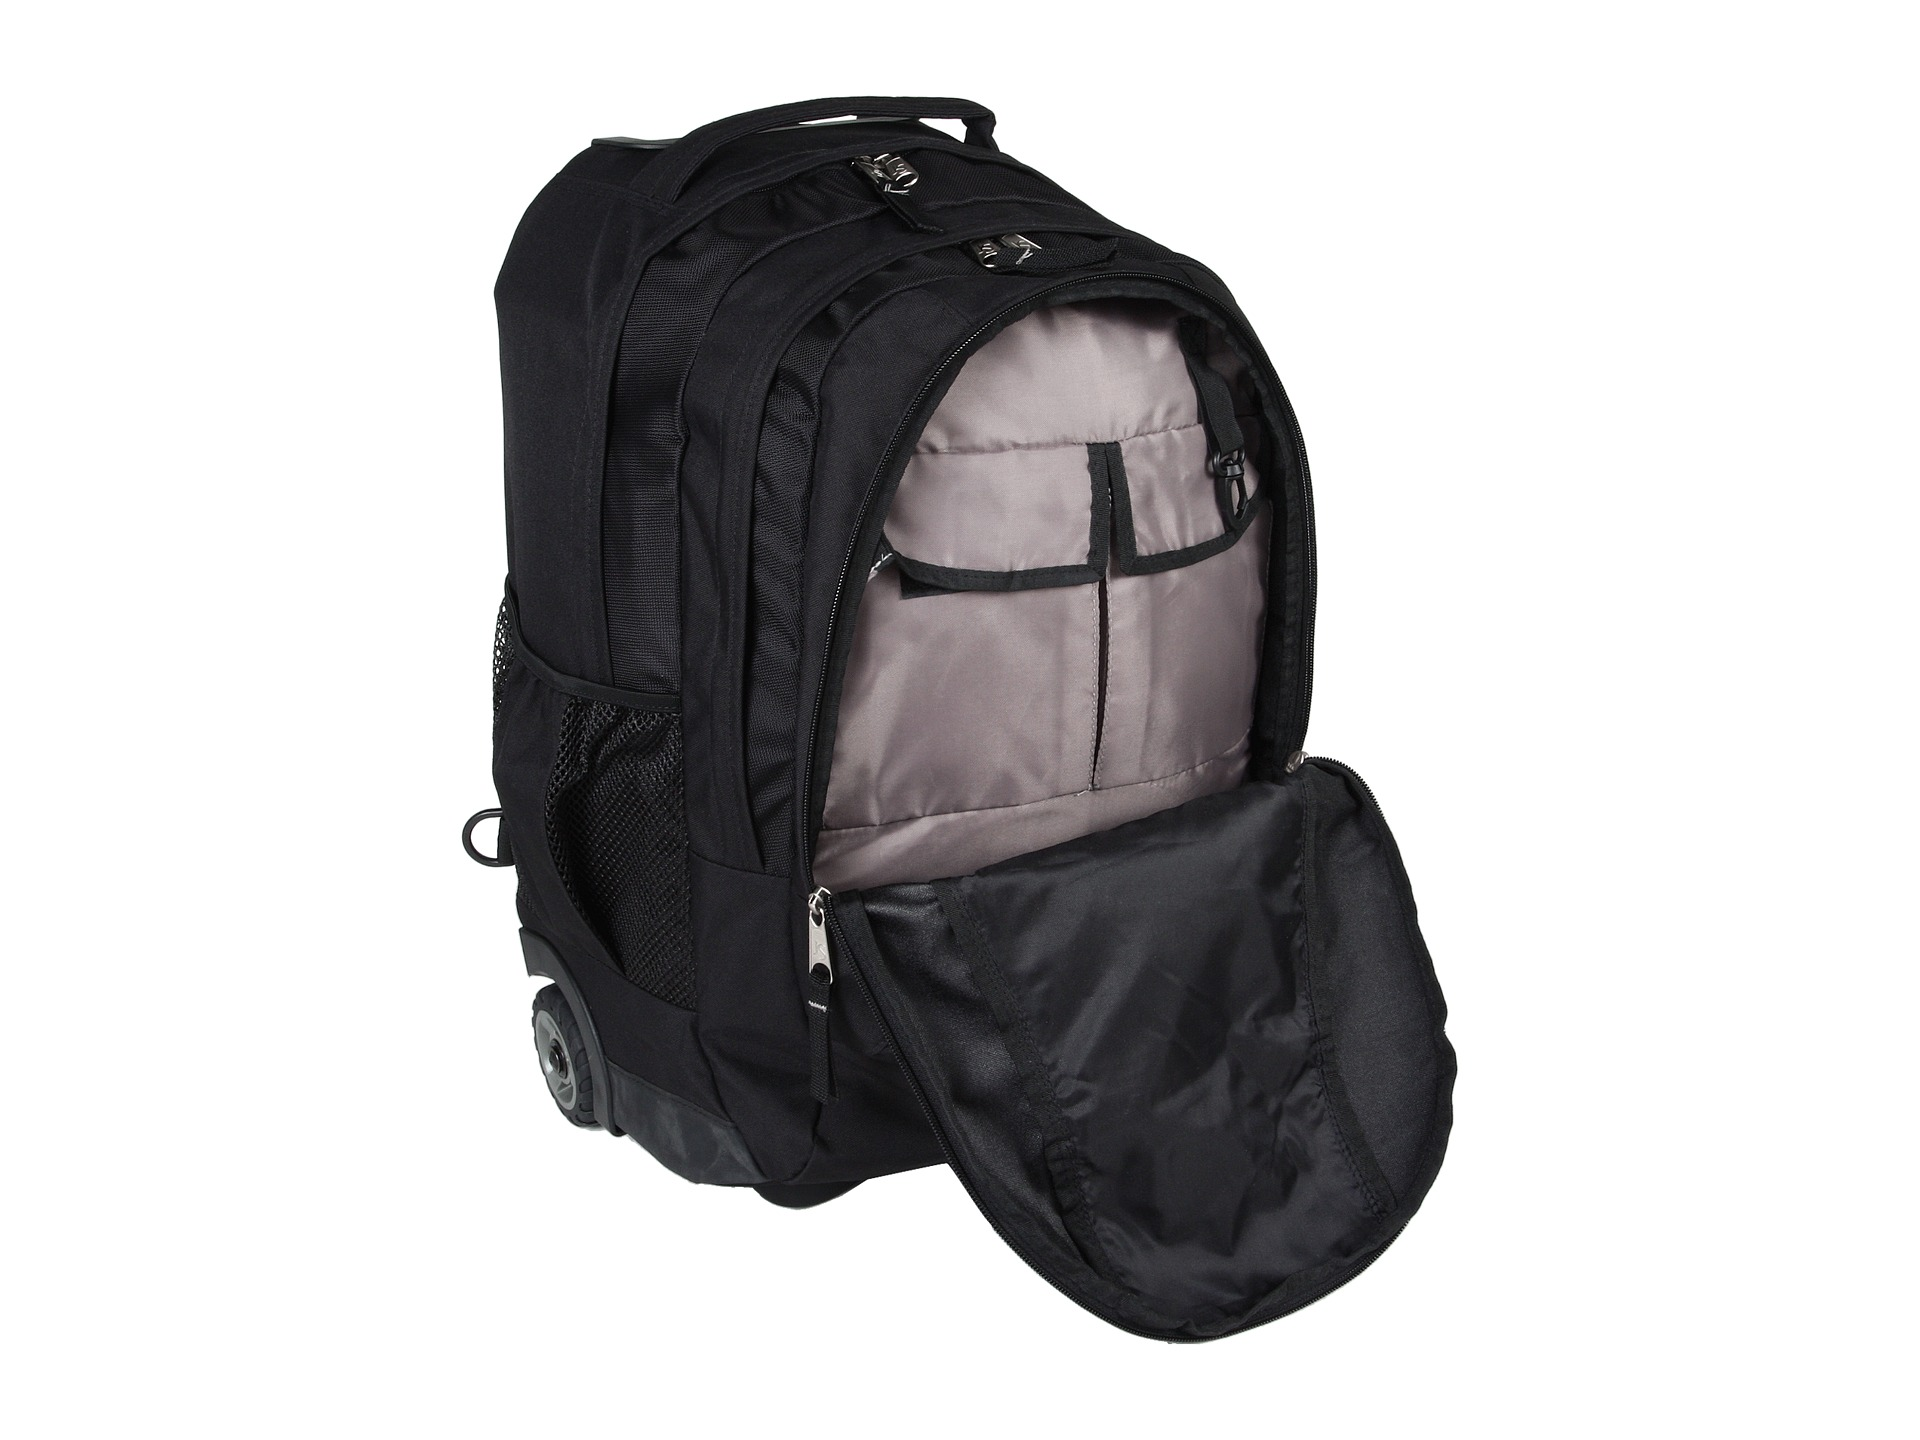 b5bc84ff2f92a Jansport driver 8 rolling backpack   Actual Wholesale